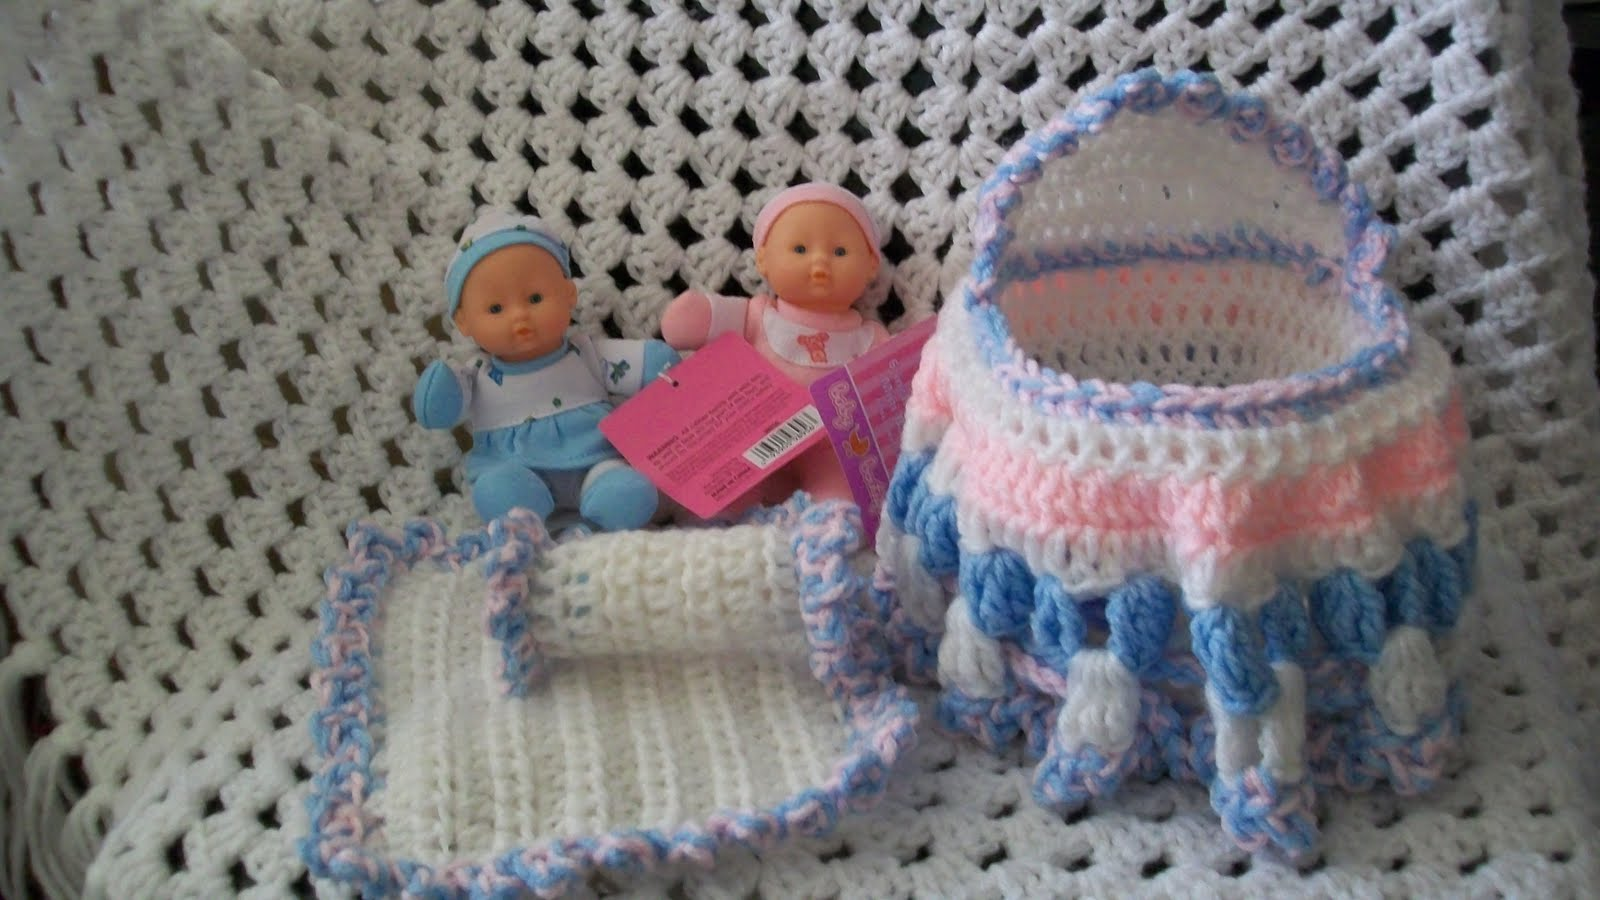 My Crocheted and Knitted Items: Another Cradle Purse